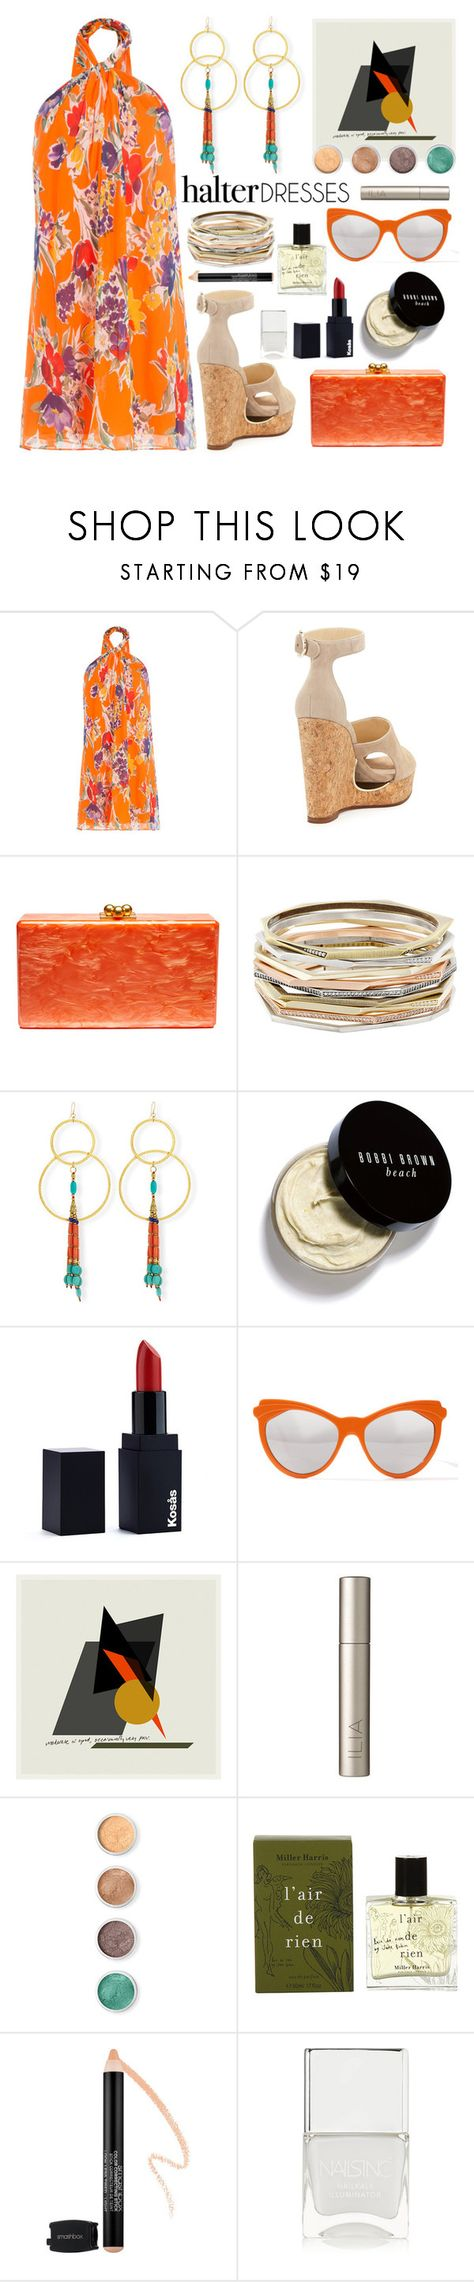 """""""Vacation Days ( Top Set )"""" by sue-mes ❤ liked on Polyvore featuring Polo Ralph Lauren, Jimmy Choo, Edie Parker, Kendra Scott, Devon Leigh, Bobbi Brown Cosmetics, Zanzan, Ilia, Terre Mère and Miller Harris"""